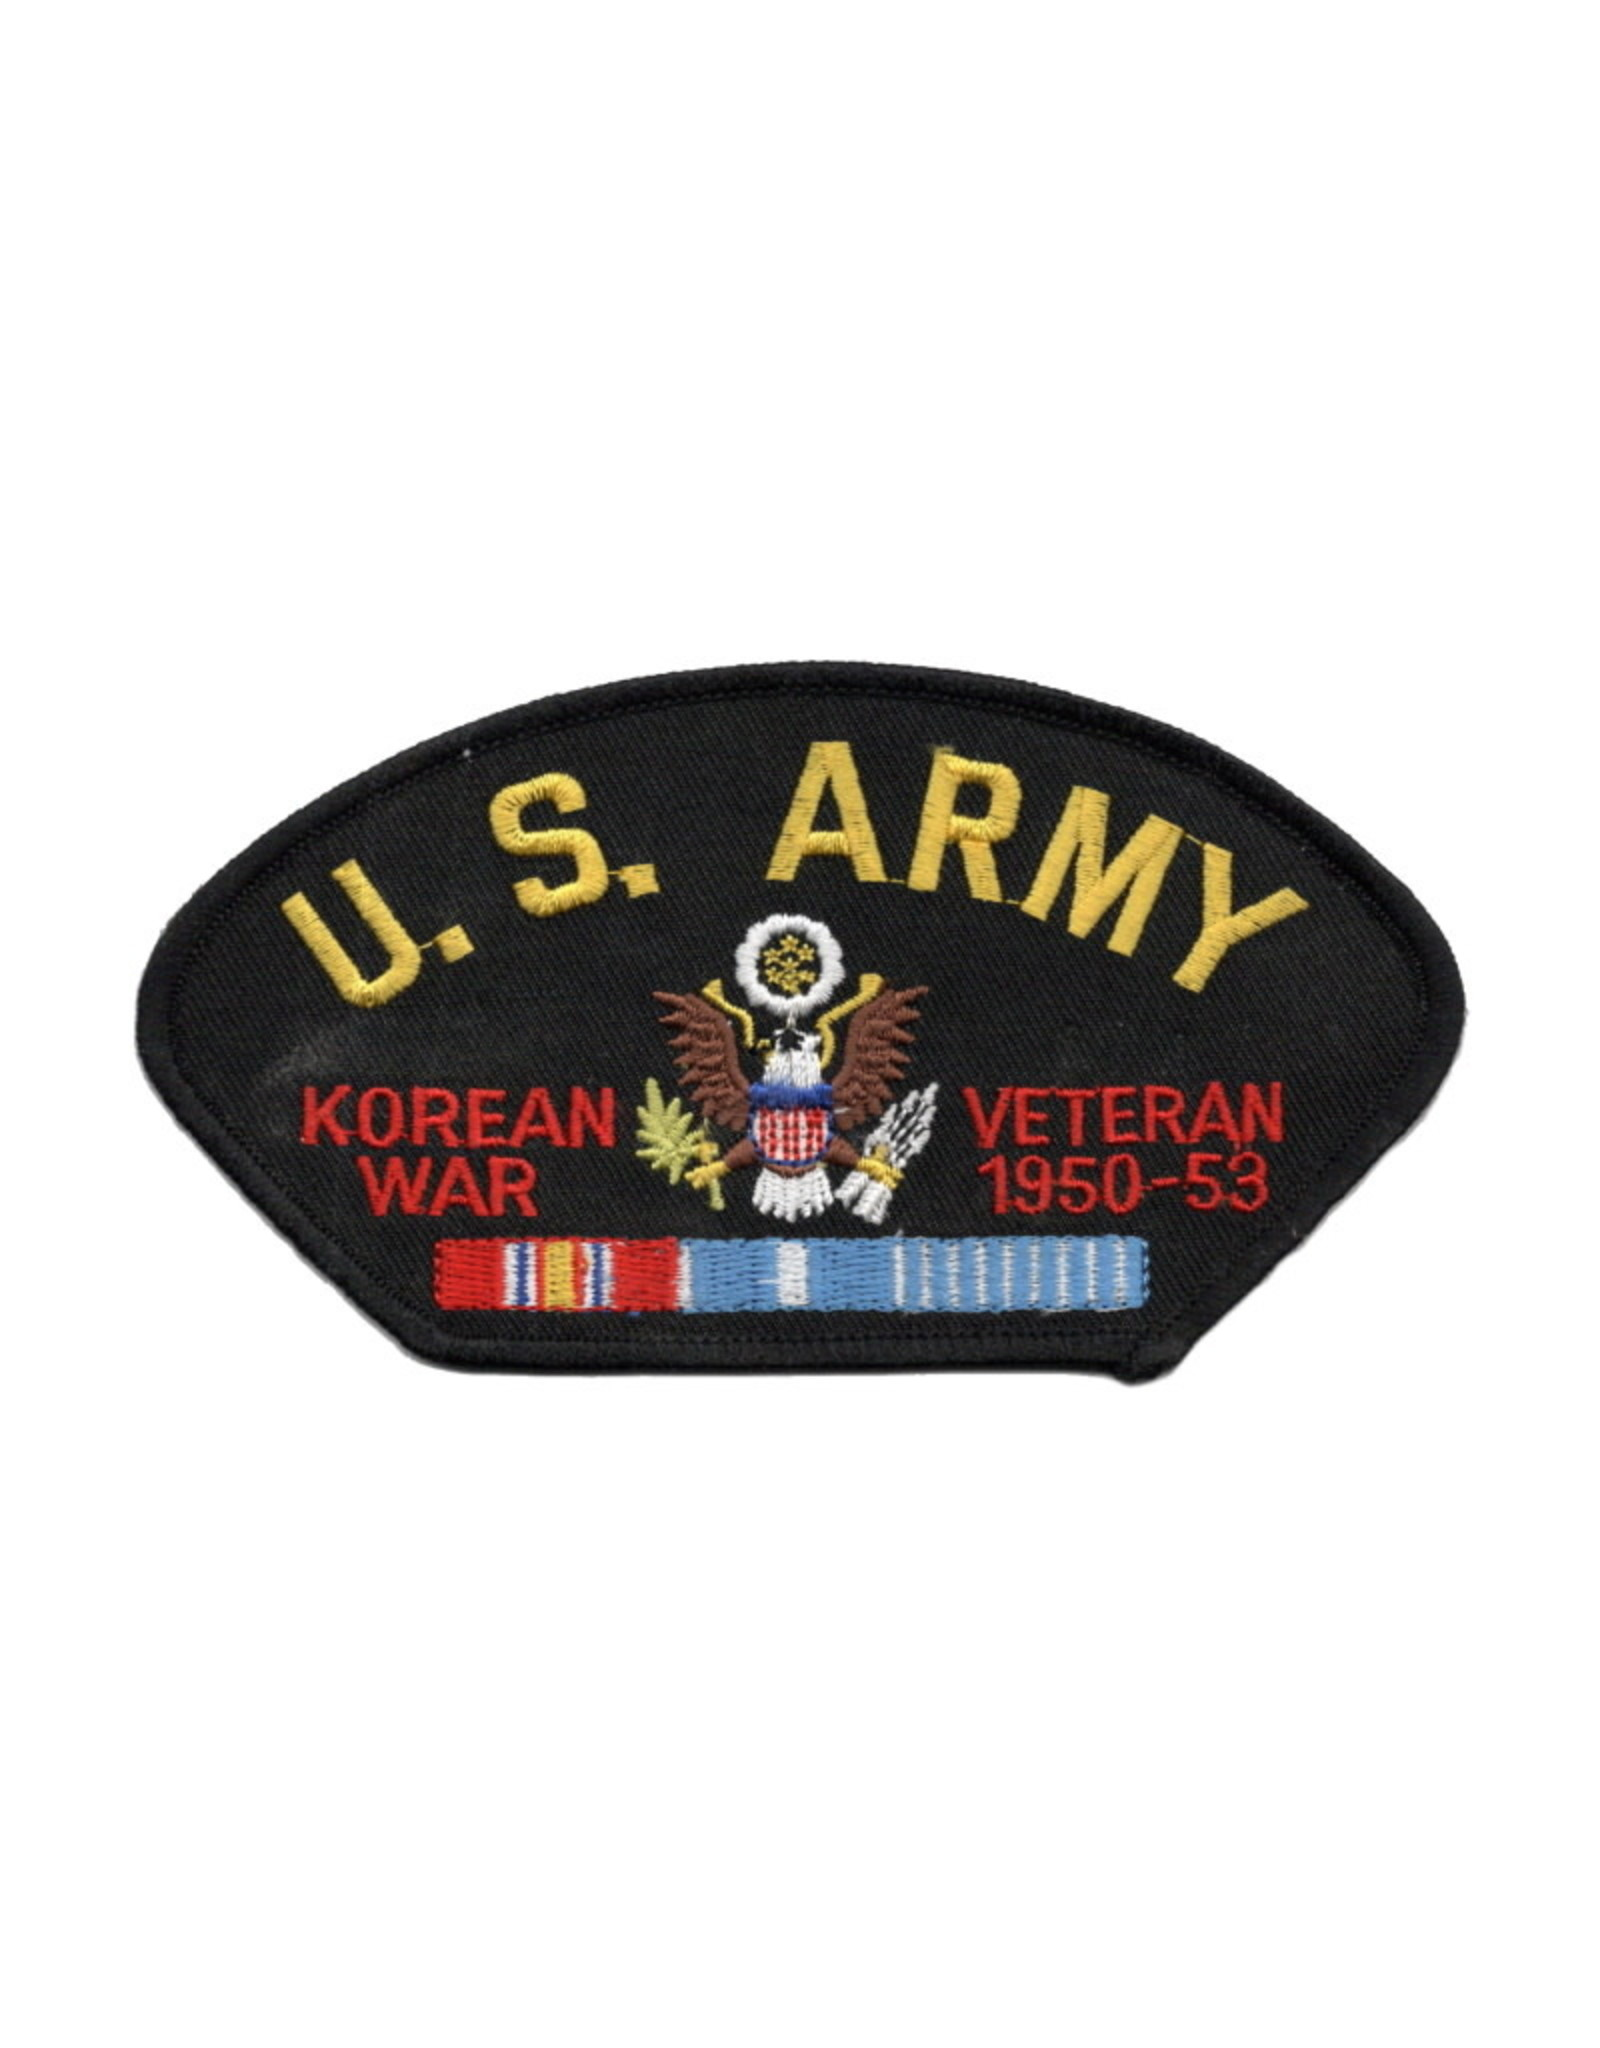 """MidMil Embroidered U.S. Army Korean War Veteran 1950-1953 Patch with Emblem and Ribbons 5.2"""" wide x 2.7"""" high Black"""